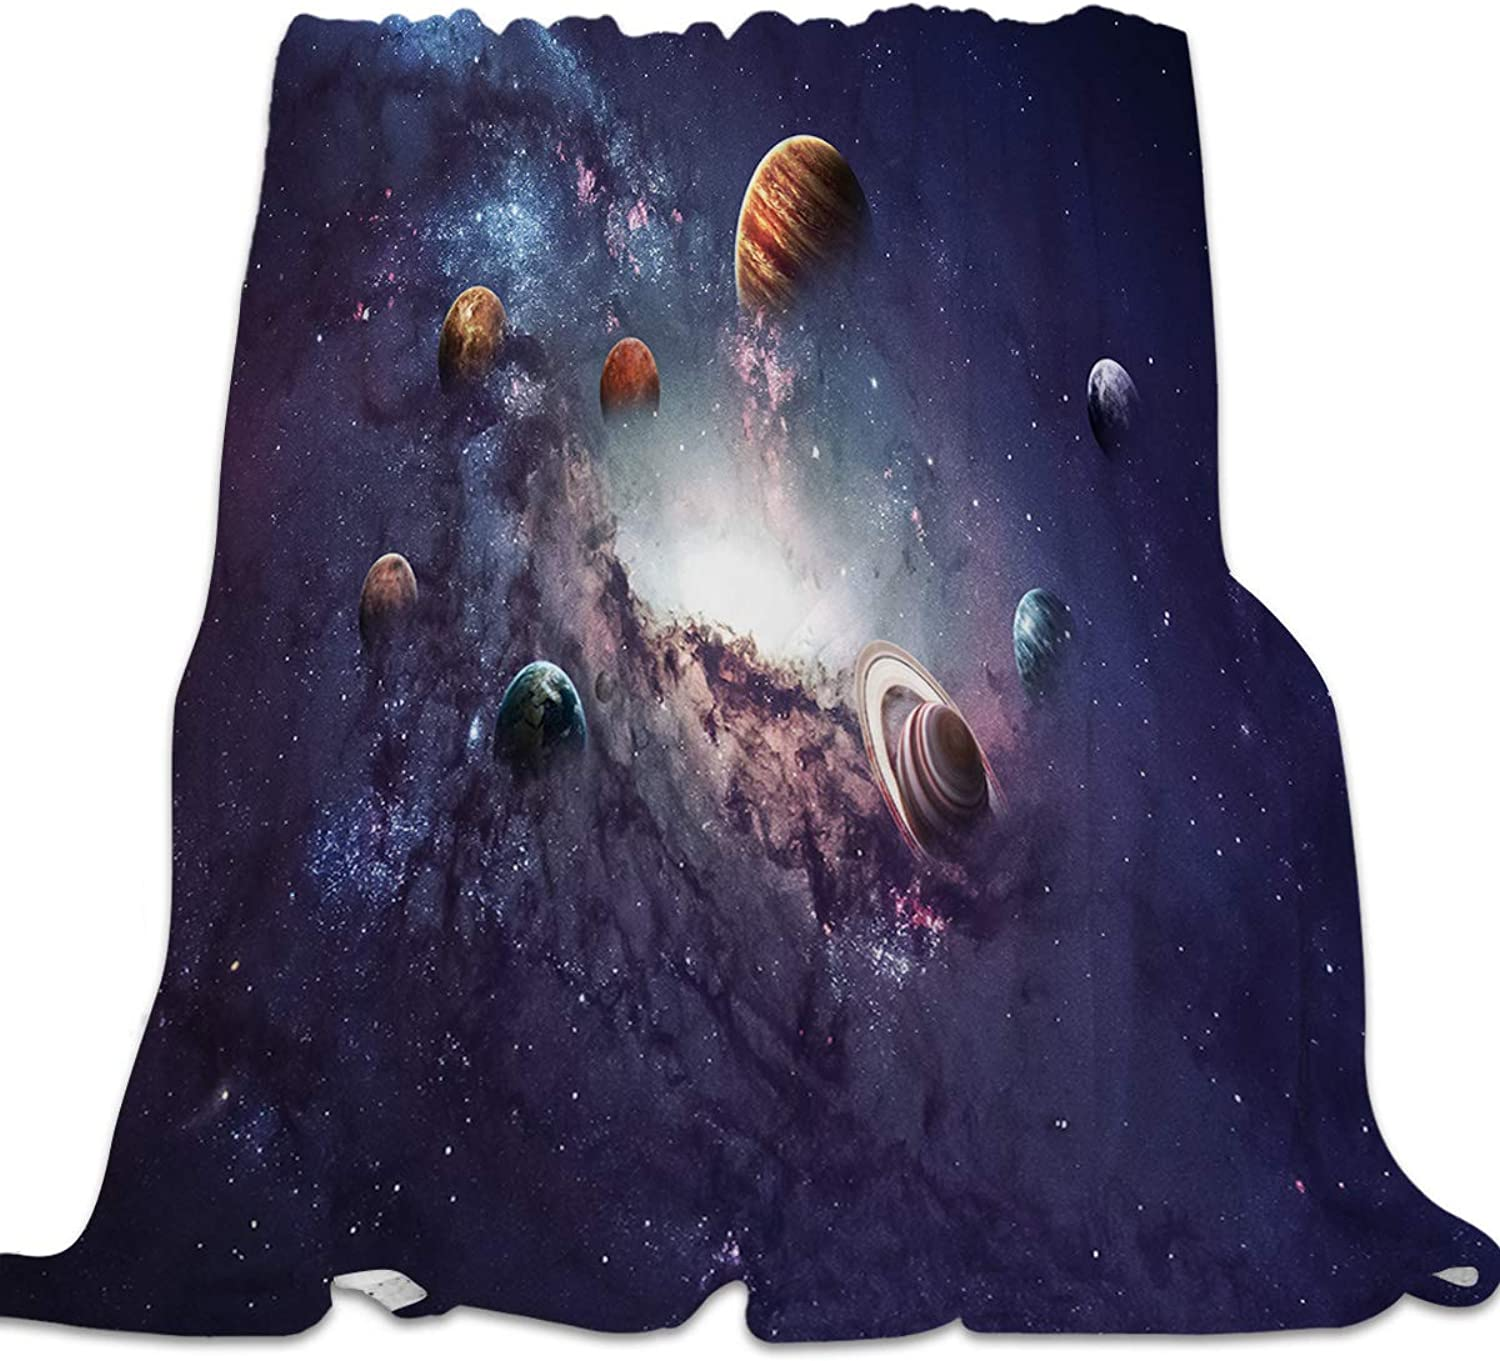 YEHO Art Gallery Flannel Fleece Bed Blanket Super Soft Cozy ThrowBlankets for Kids Girls Boys,Lightweight Blankets for Bed Sofa Couch Chair Day Nap,Solar System Universe Pattern,49x59inch